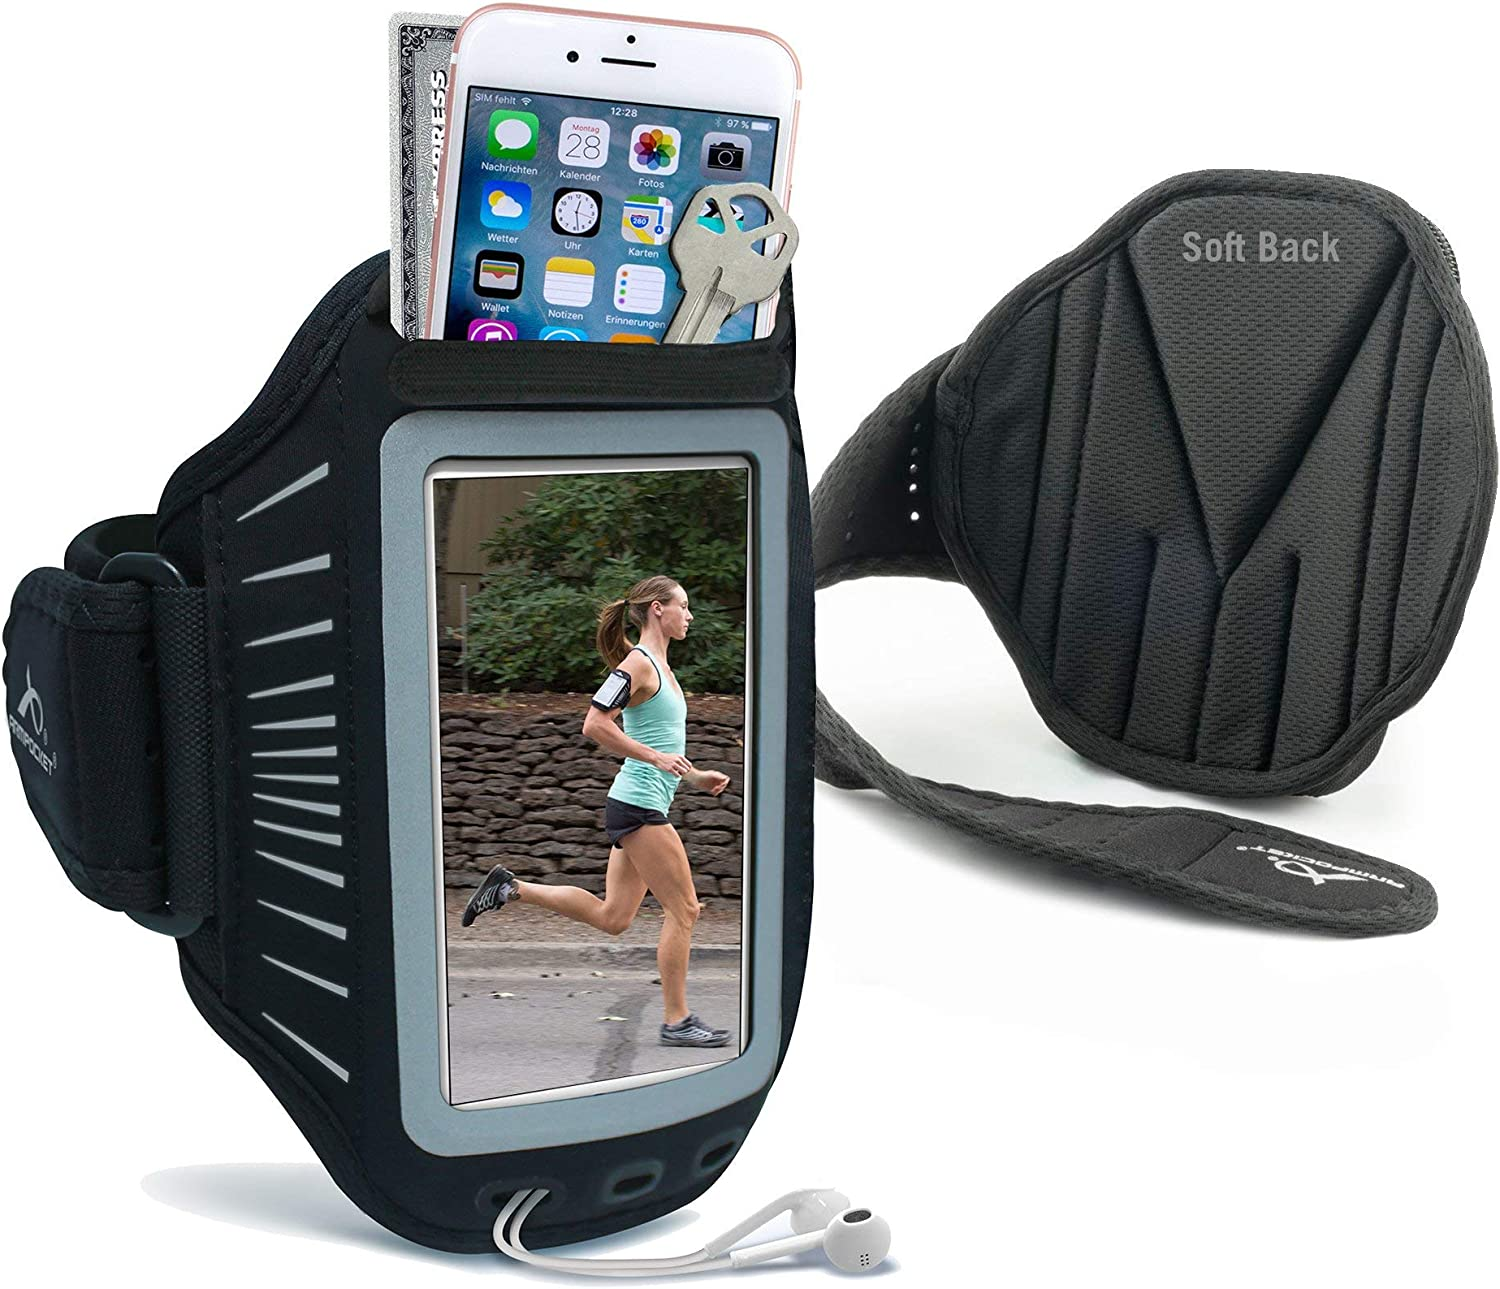 """Armpocket Racer Ultra Thin Phone Armband, Fits iPhone 8/7/6, Google Pixel, or Phones up to 5.5"""""""